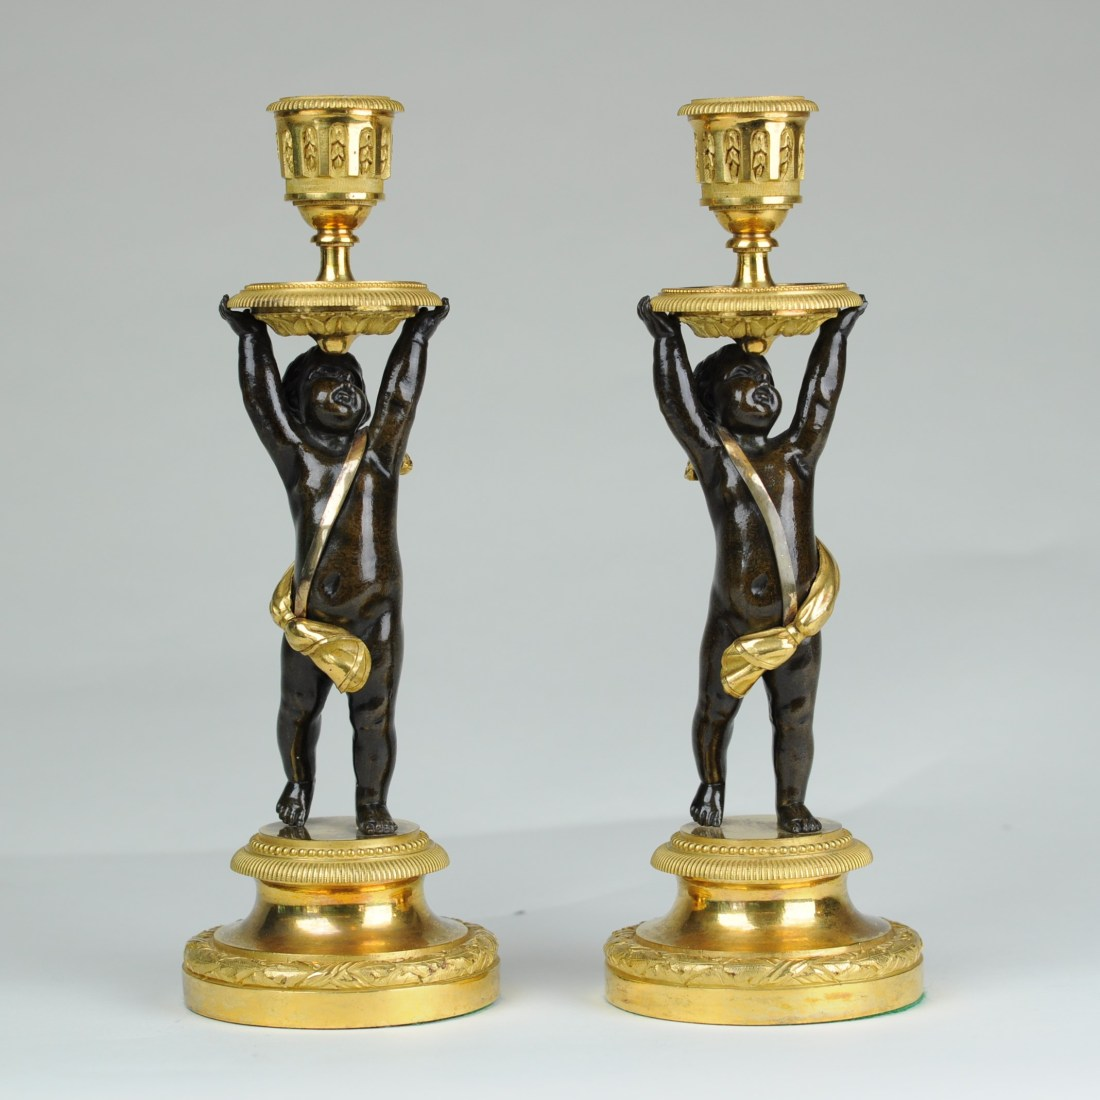 Candlesticks in the form of putti standing on gilt bronze plinths and supporting foliate candle sconces. 1820. Regency in style.